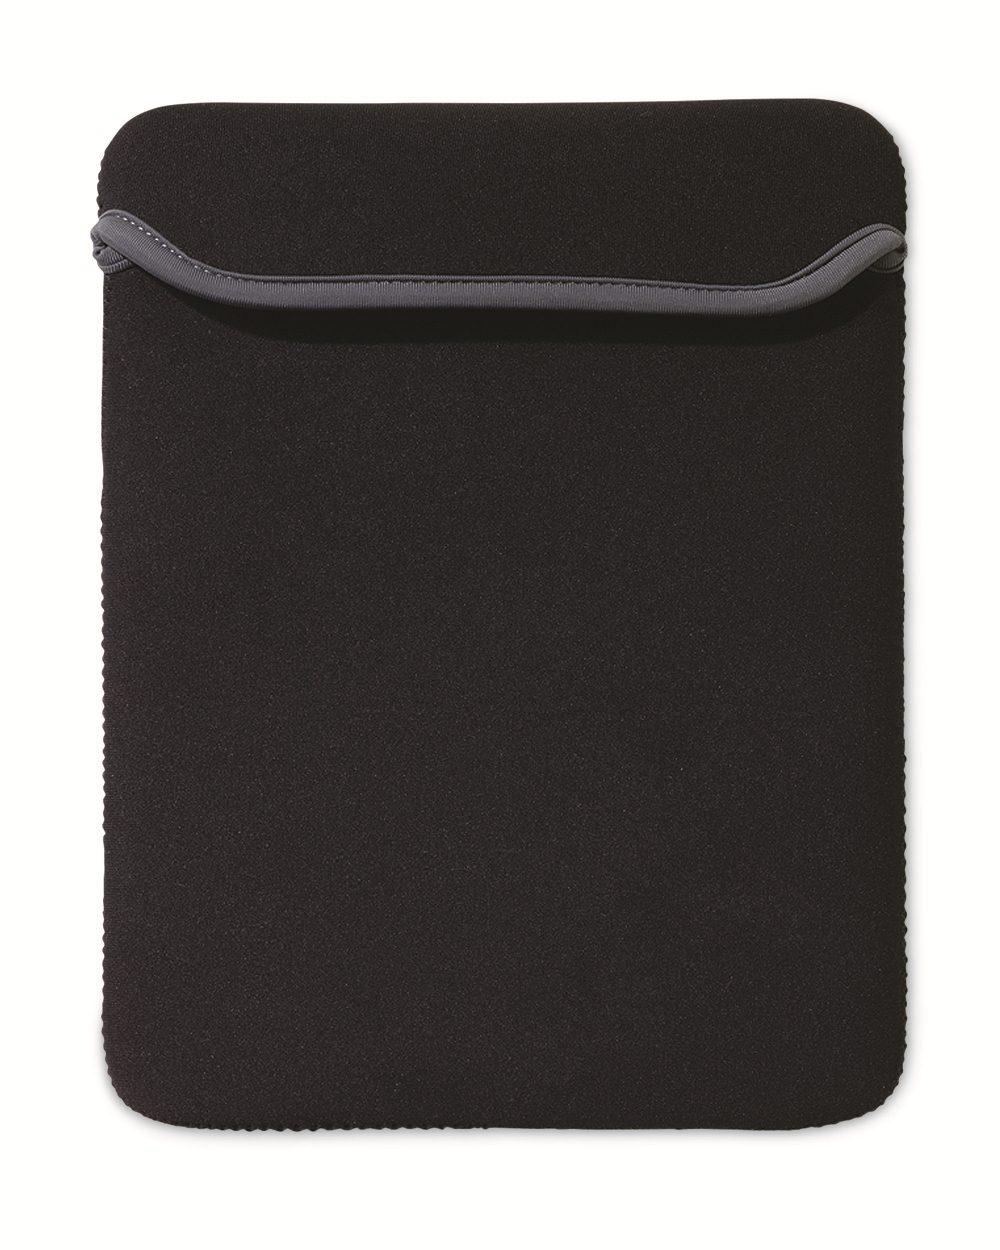 Valubag Neoprene eBook Reader Sleeve - VB1007